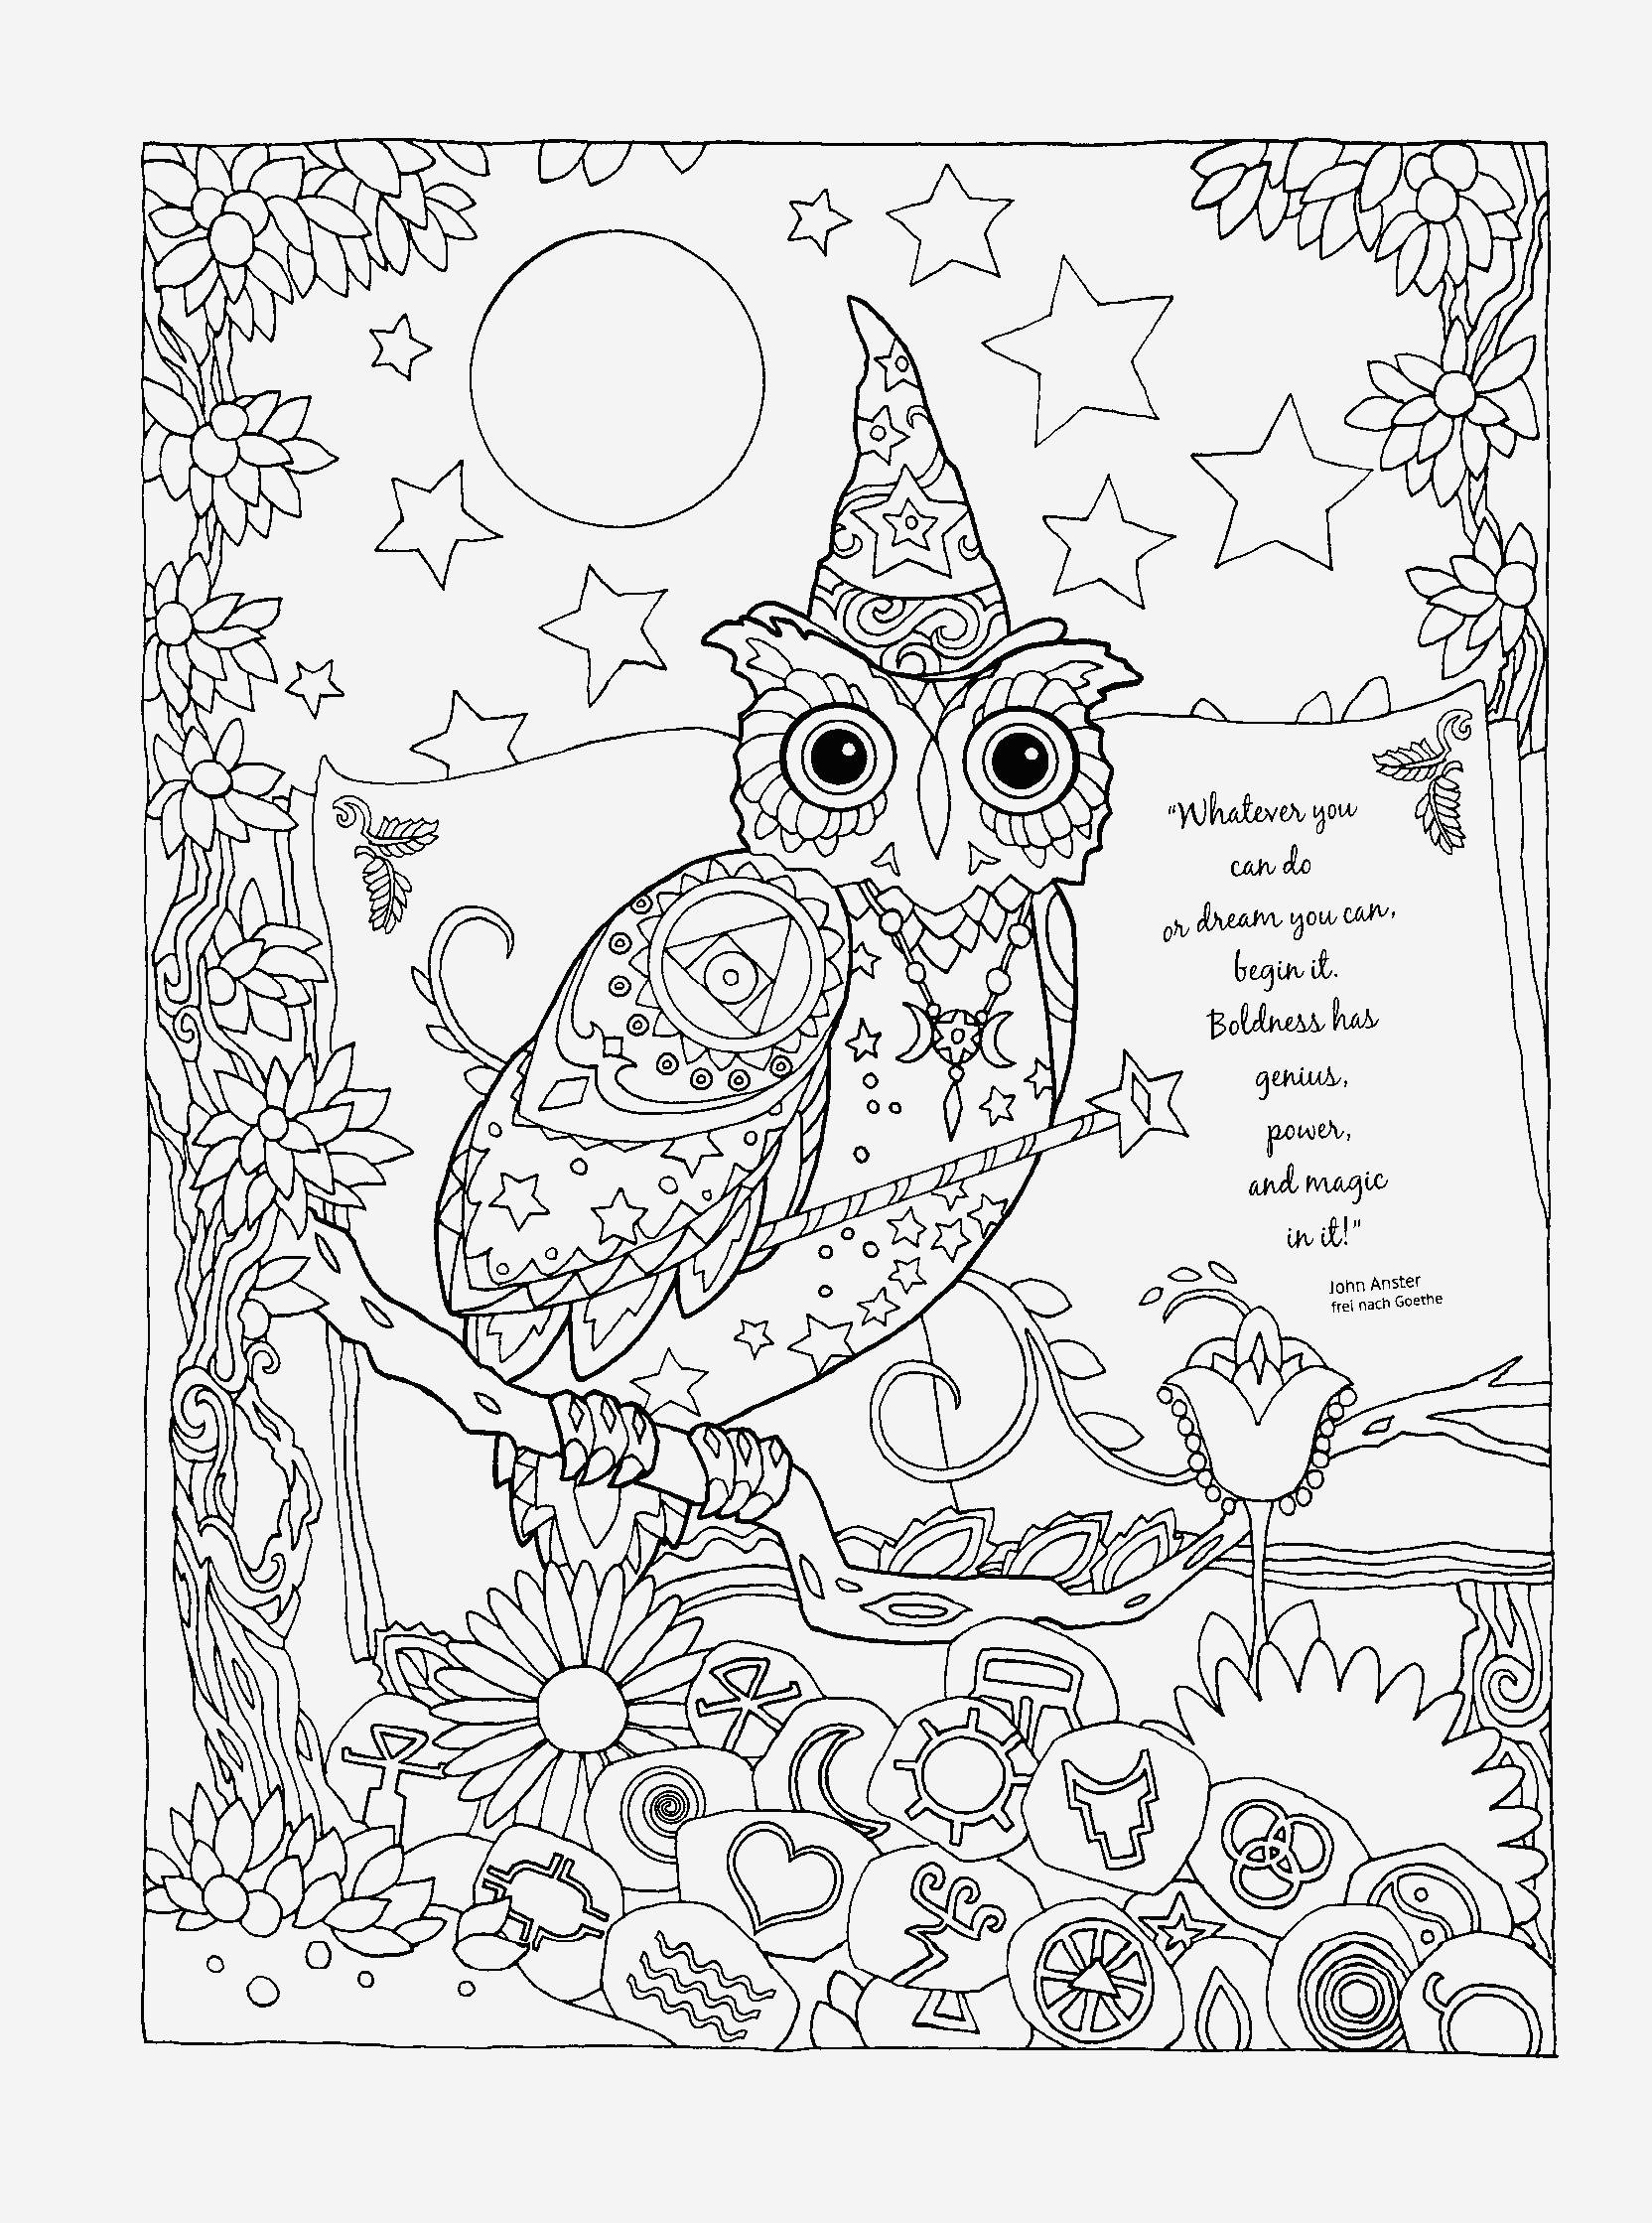 sight word coloring pages printable Download-Sight Word Coloring Pages 2nd Grade Winter Printable 1st Great First Inspiration Page Garde Word 1-f